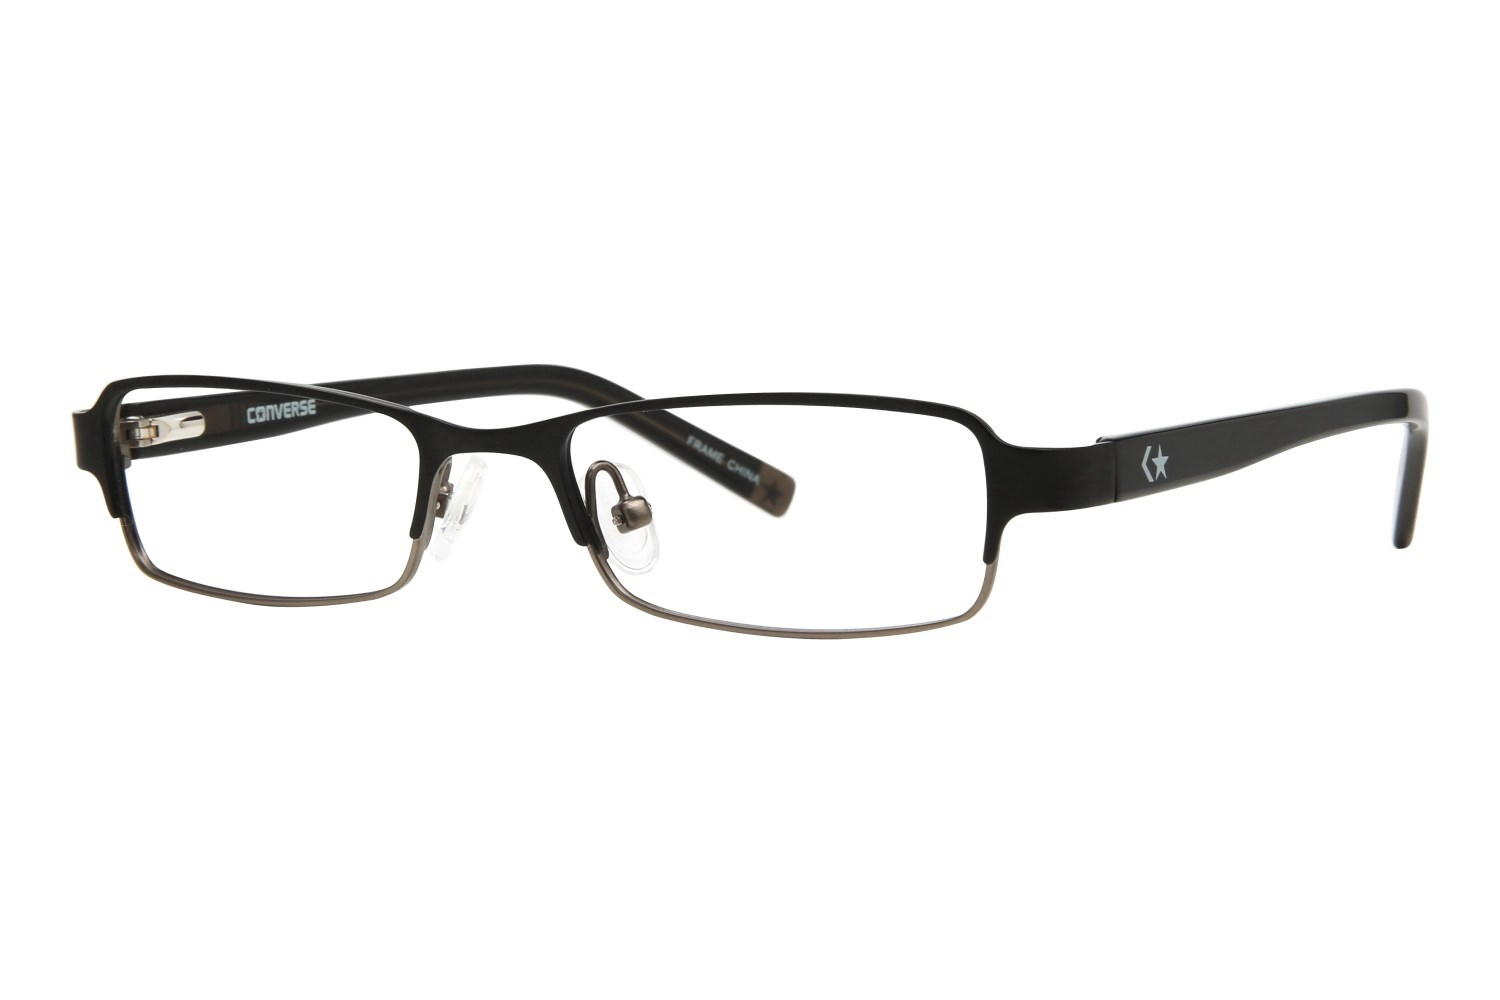 converse-energy-prescription-eyeglasses